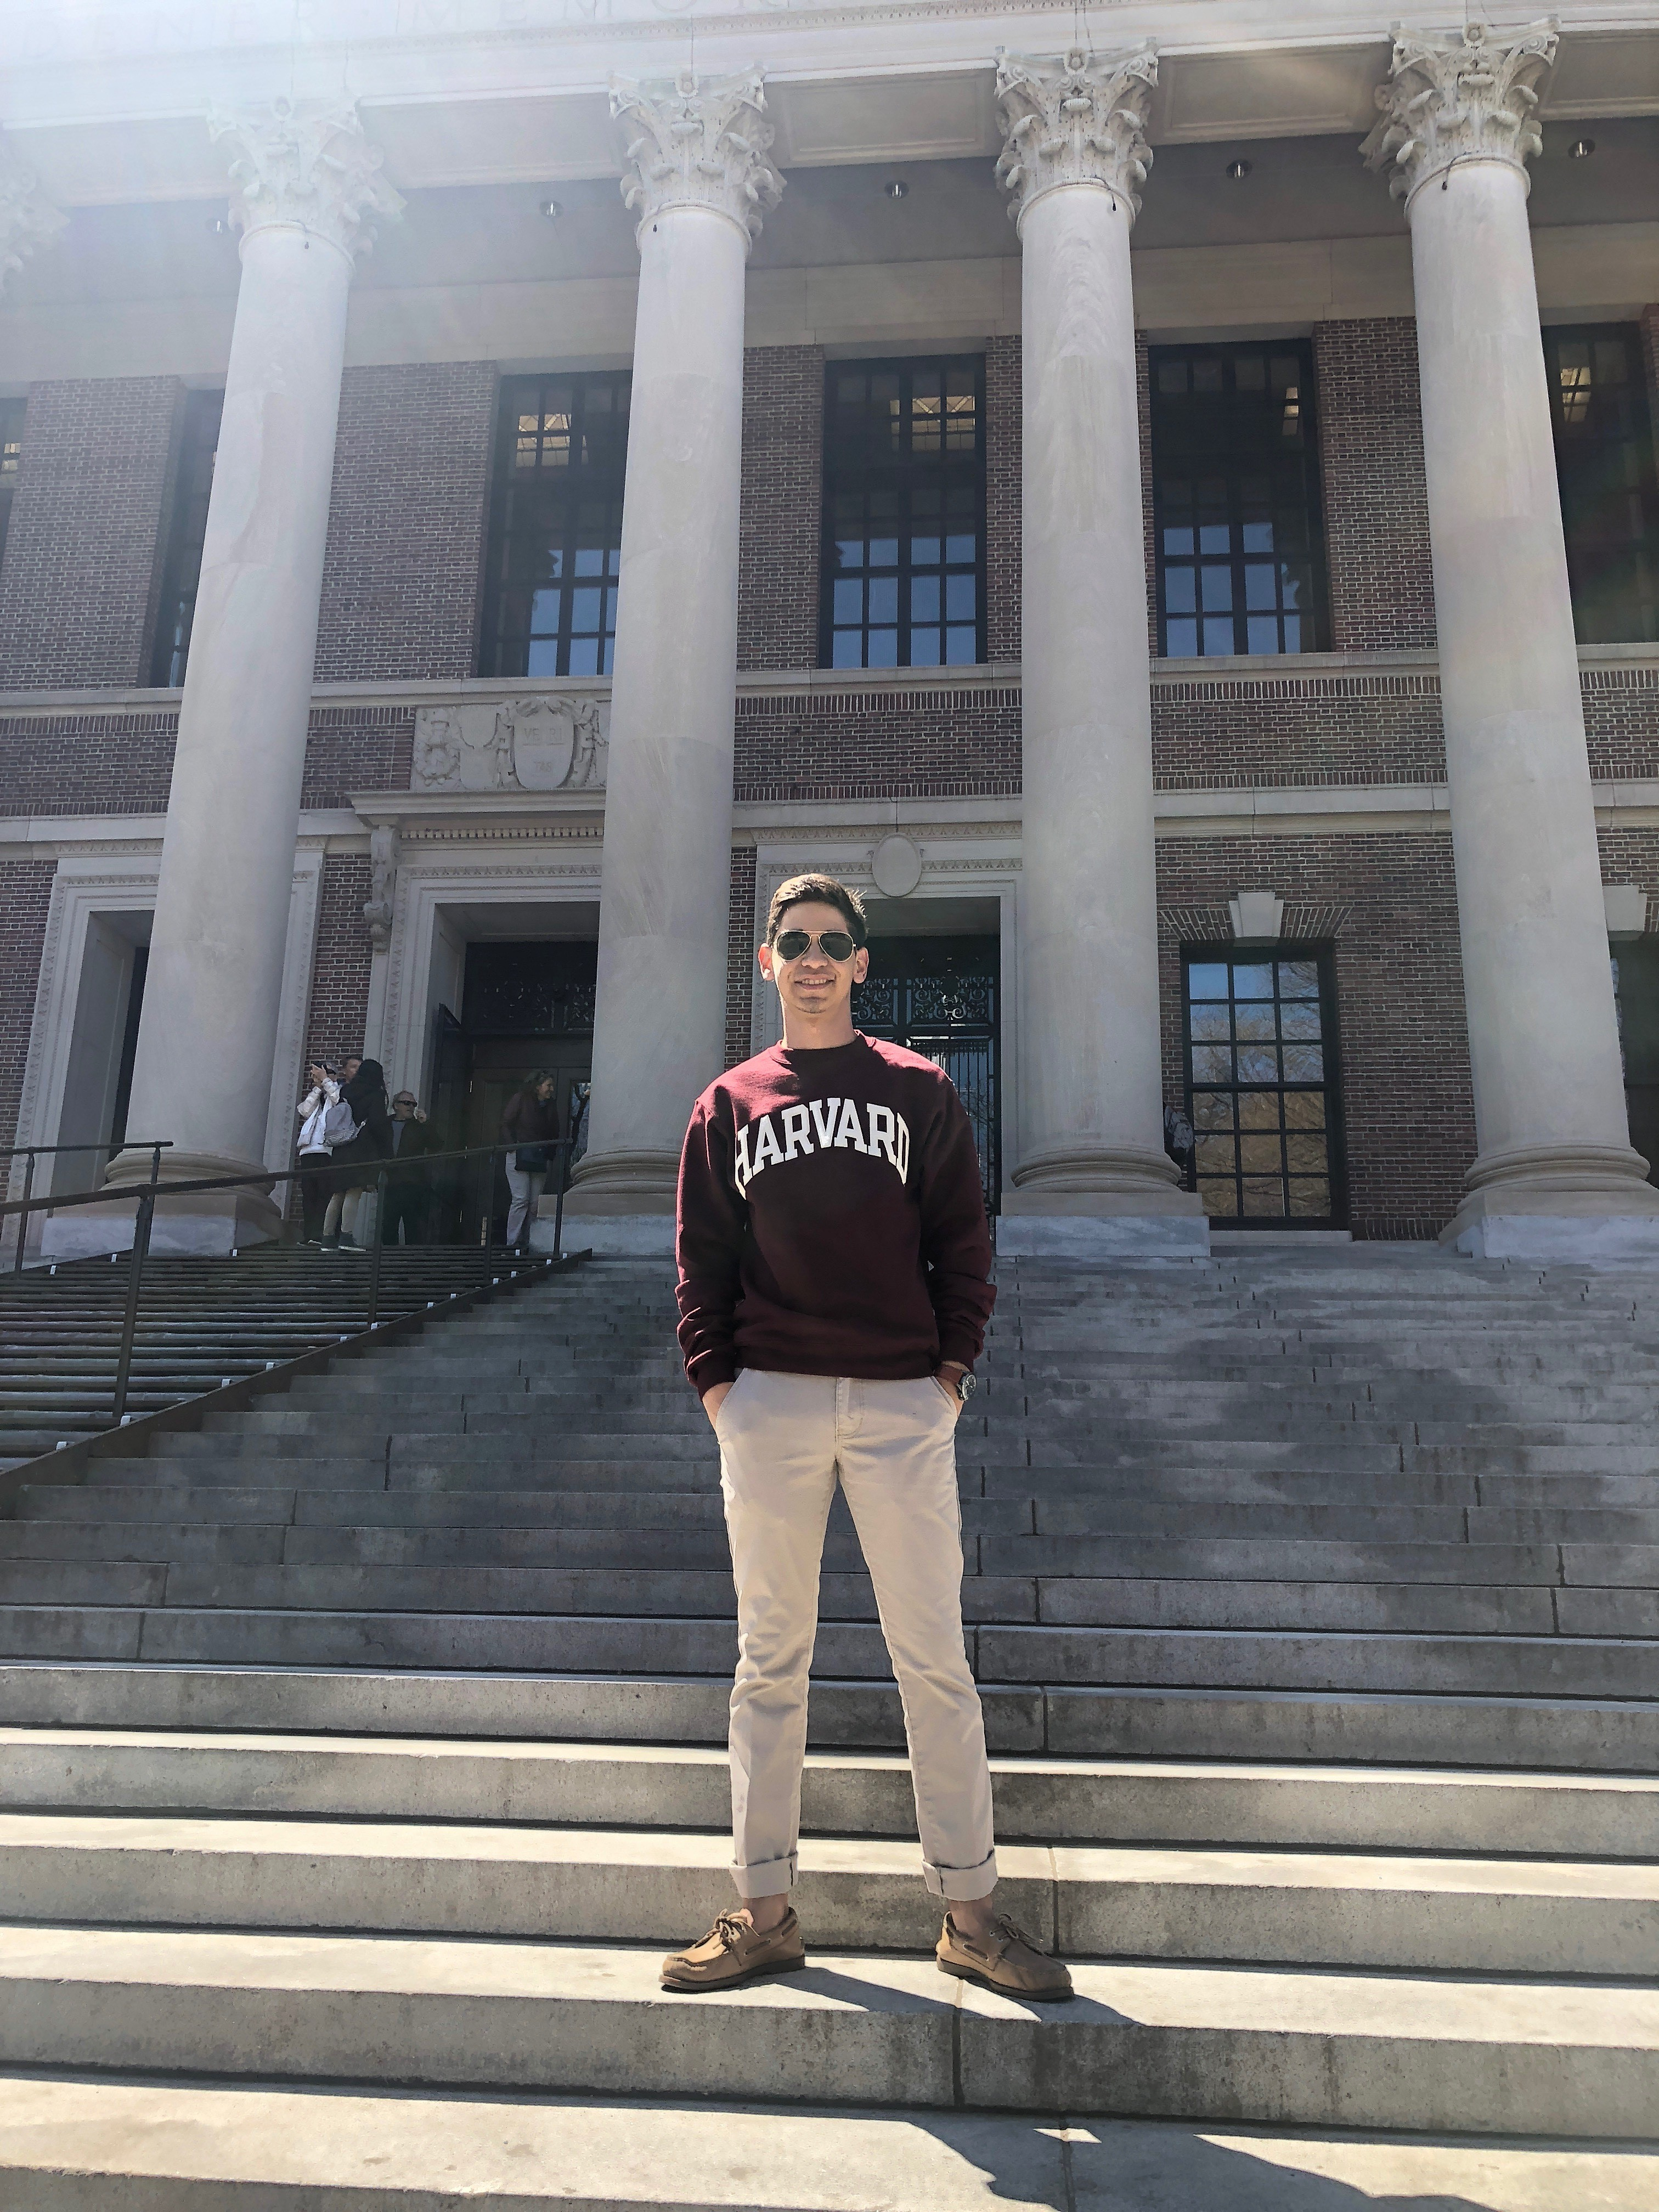 Abraham Castaneda visiting Harvard University, the college he'll attend this fall. (Photo courtesy Daisy Castaneda).